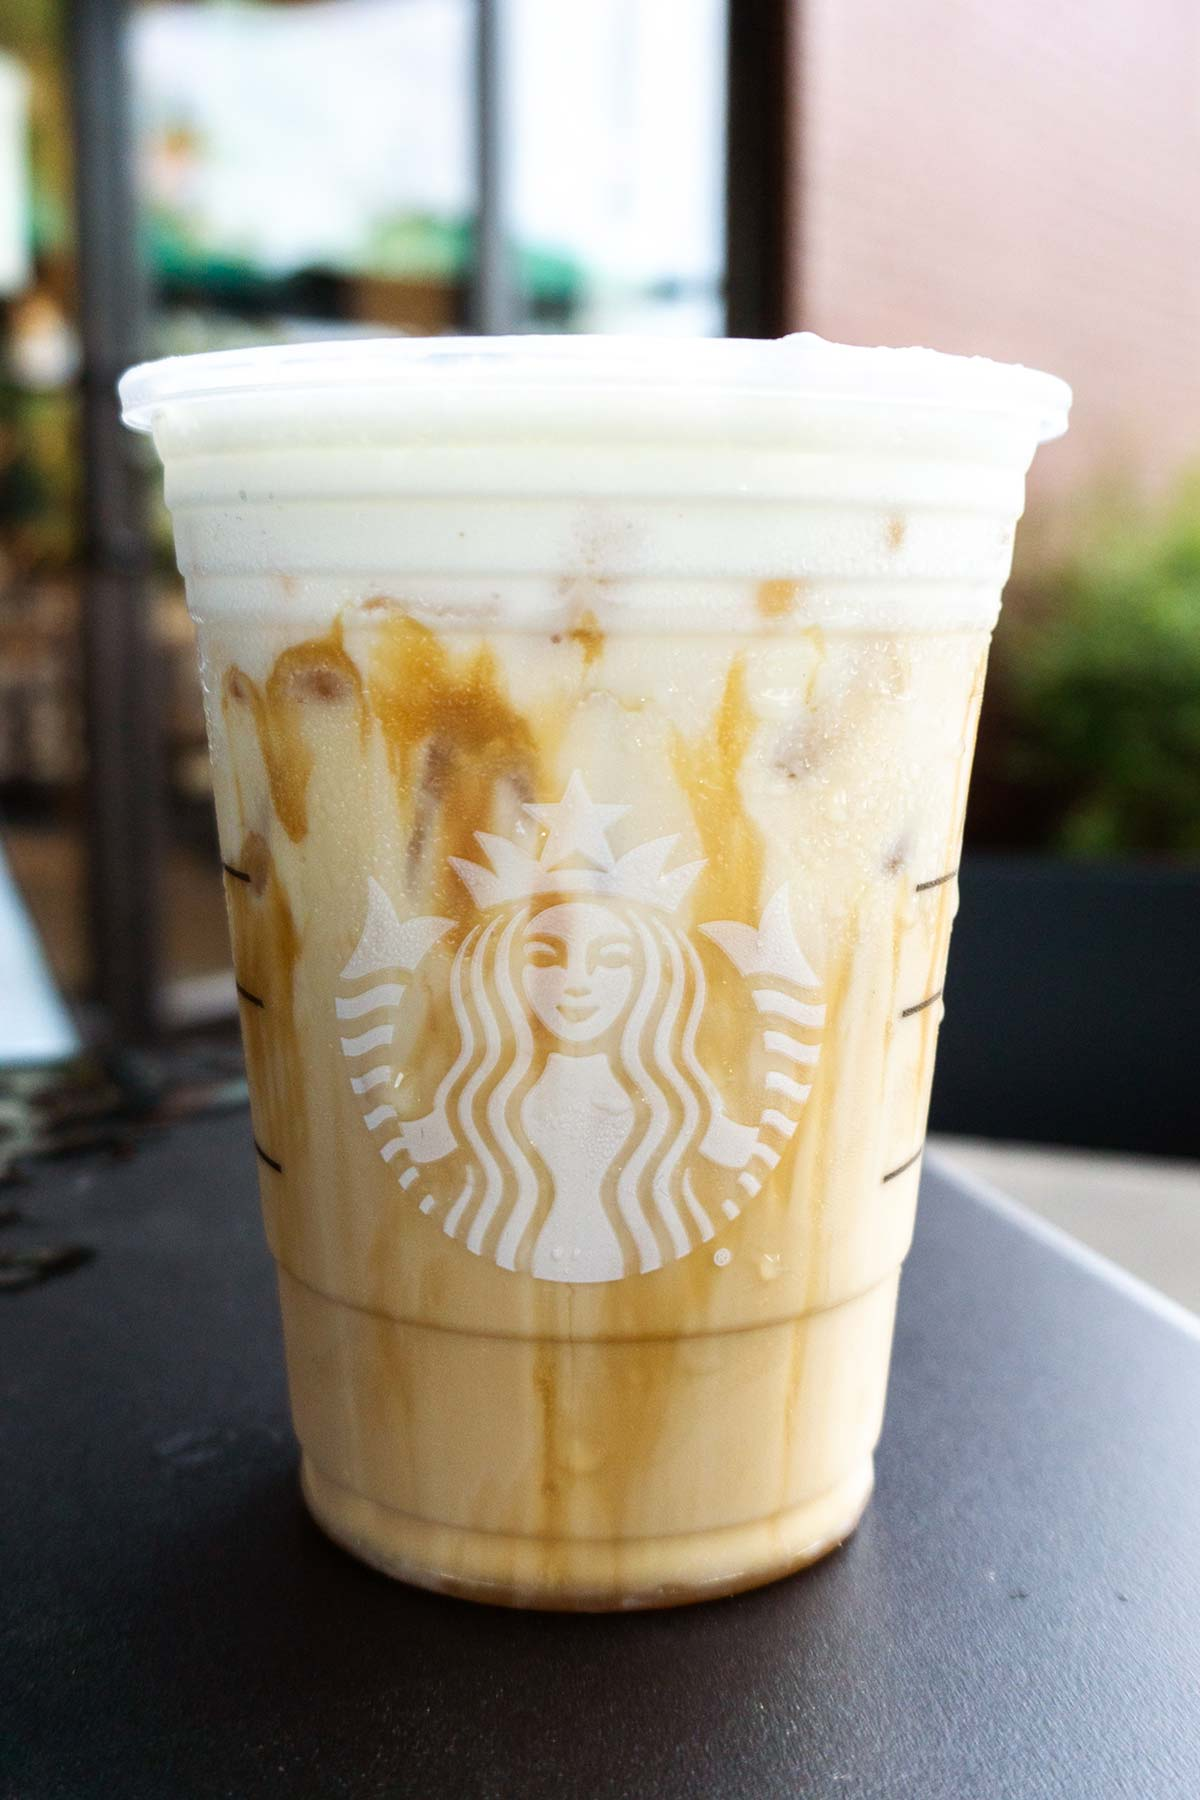 Iced White Mocha with Sweet Cream Foam in a Starbucks cup.